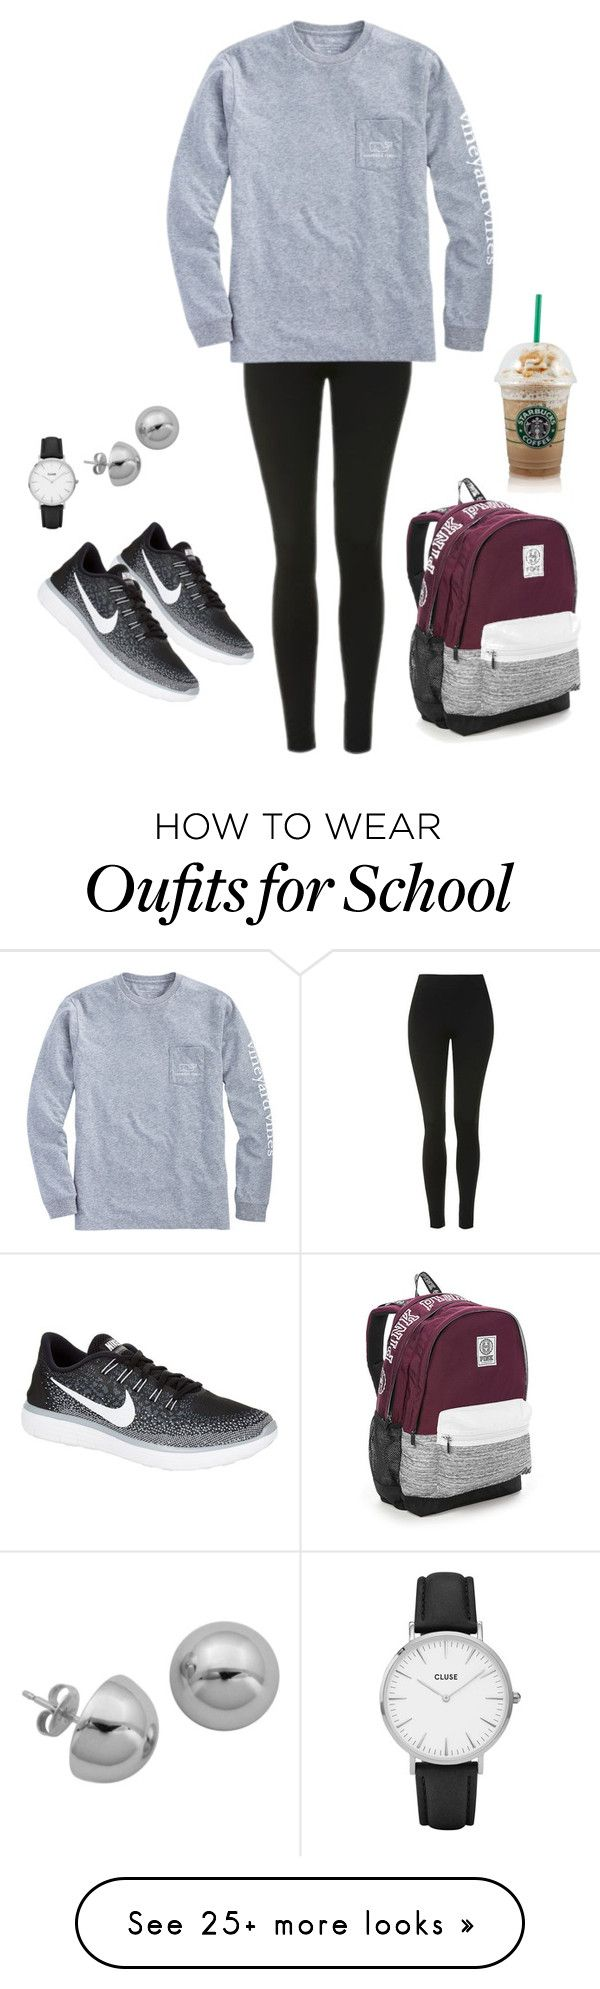 """""""lazy day at school but still wanna look cute lol"""" by jessicamariejms on Polyvore featuring Topshop, Vineyard Vines, NIKE, CLUSE, Lord & Taylor and Victoria's Secret"""